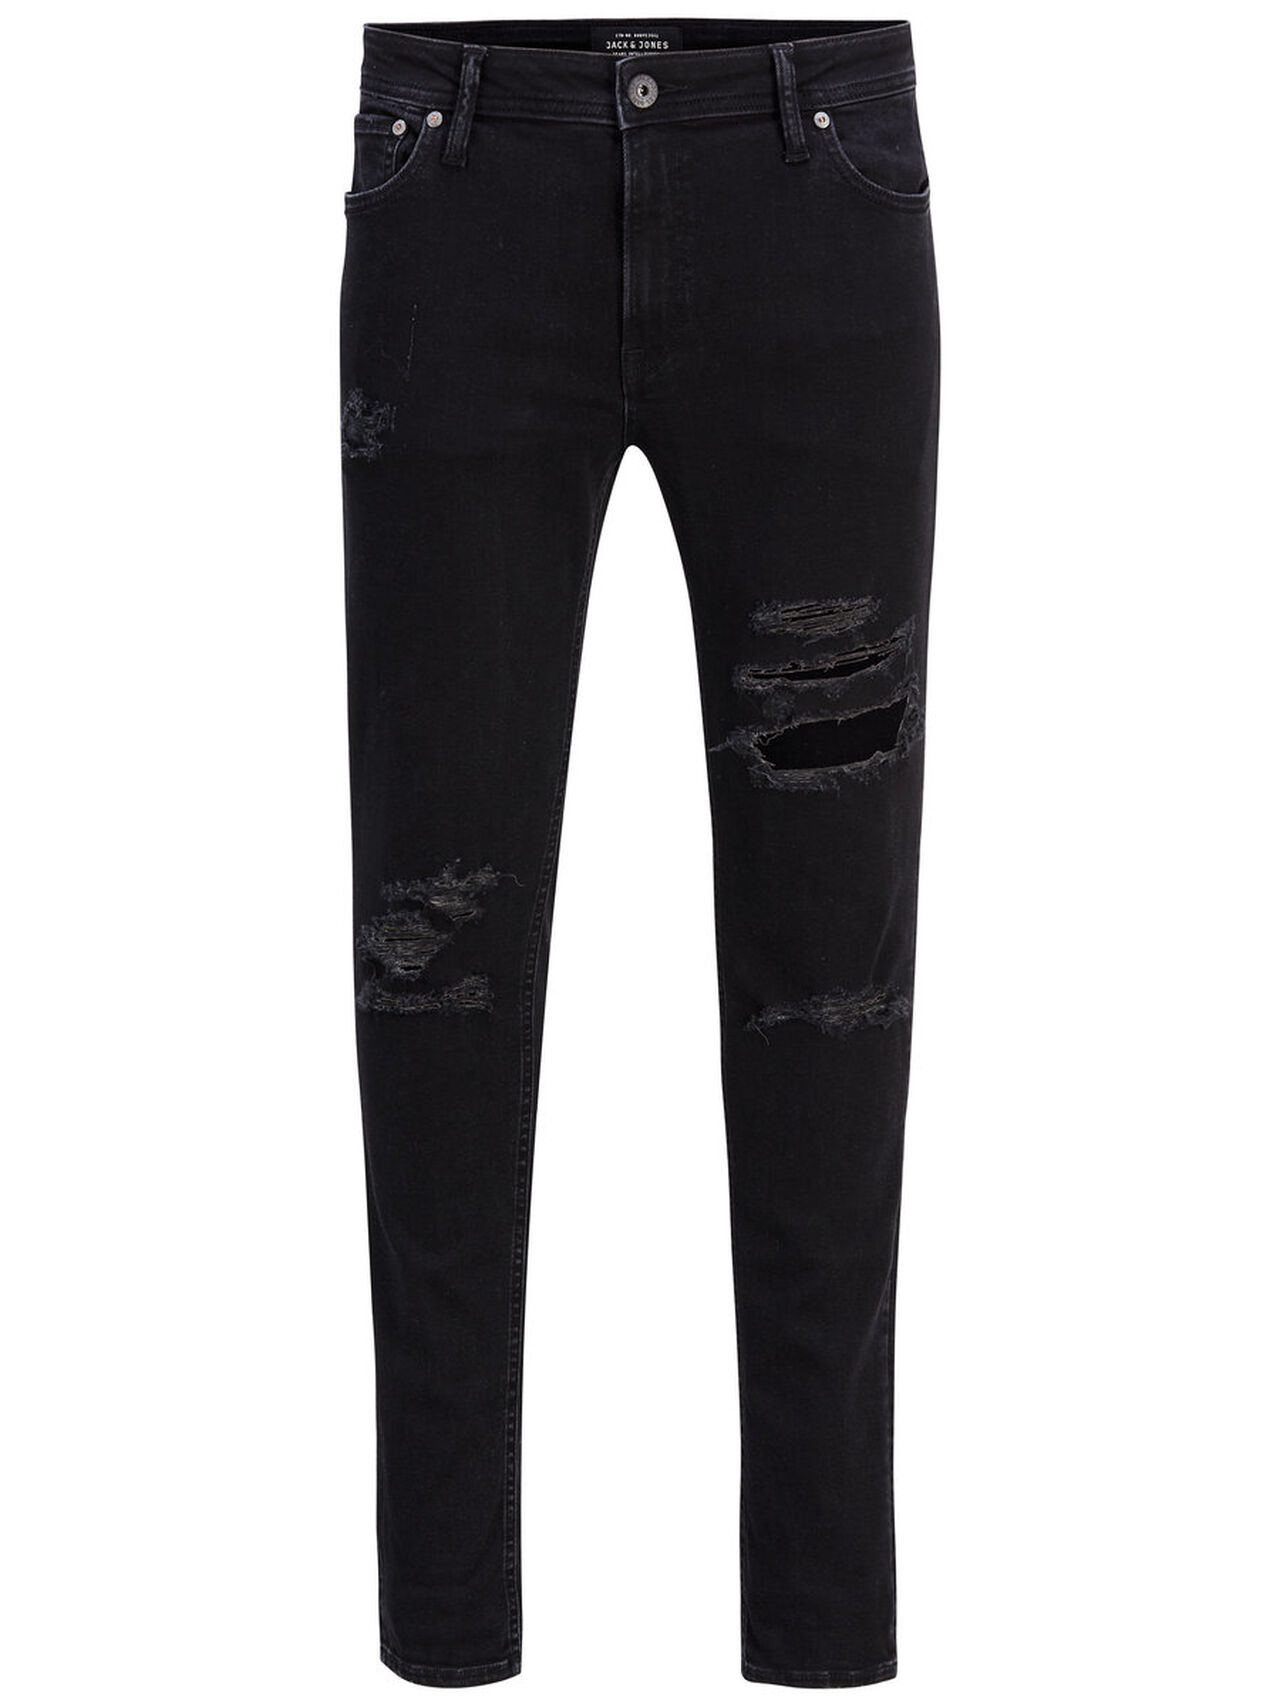 jack and jones liam original am 502 skinny fit jeans. Black Bedroom Furniture Sets. Home Design Ideas